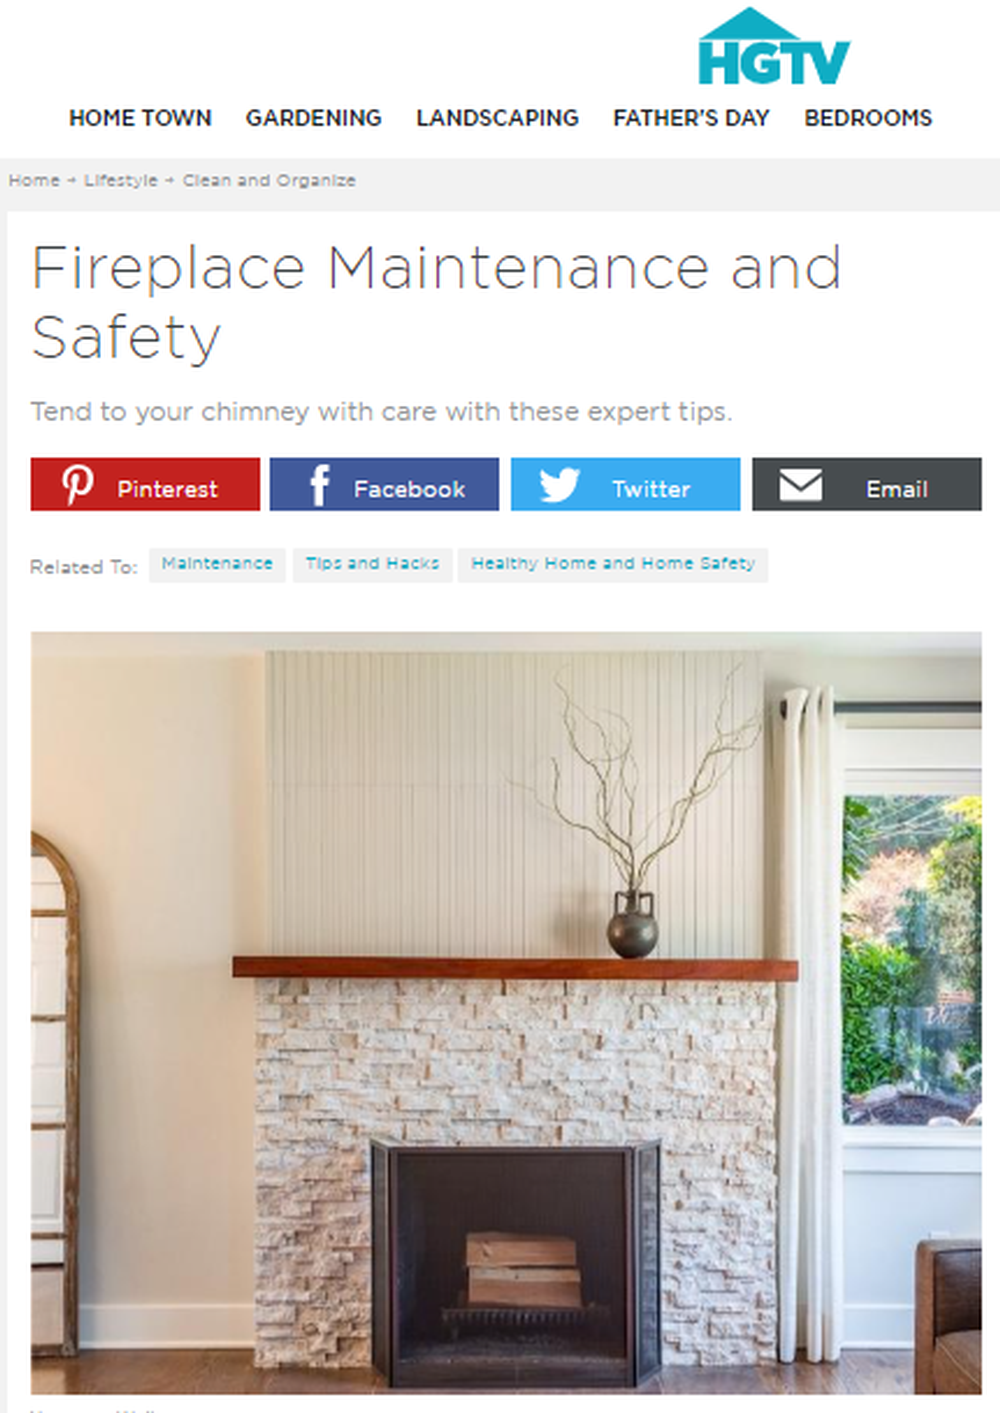 Fireplace_Maintenance_and_Safety_HGTV (1).png